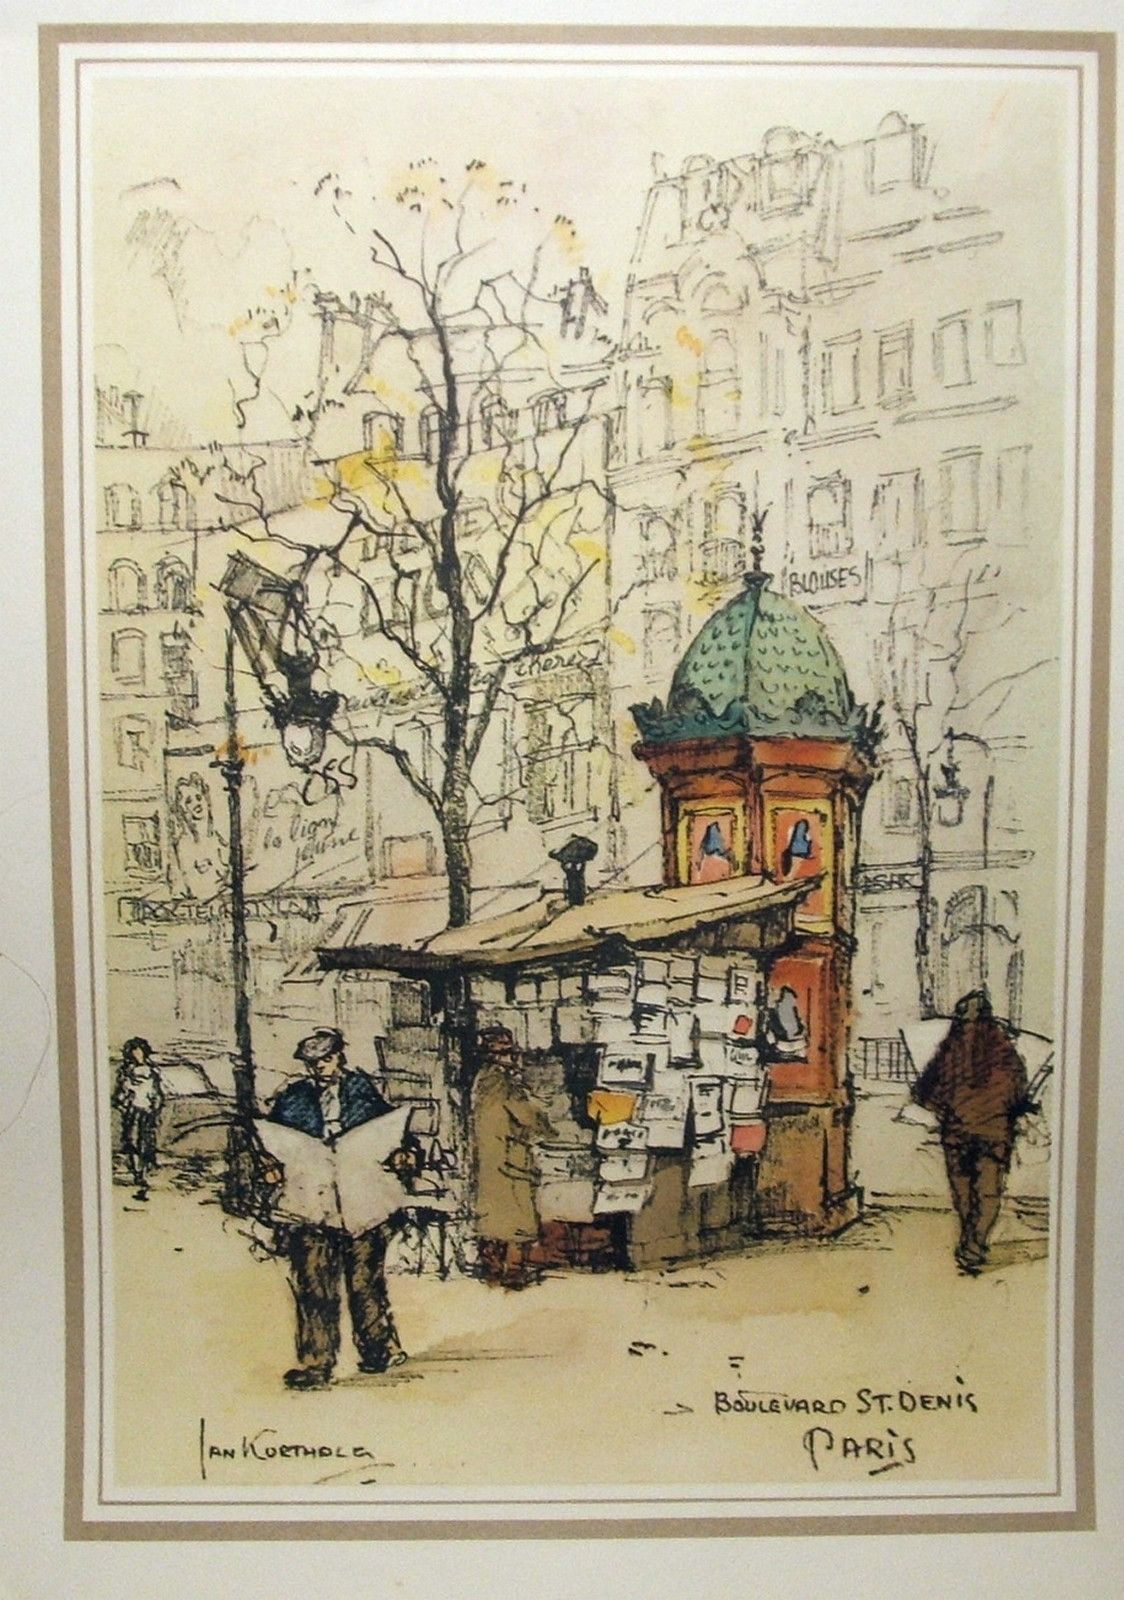 Color art printing anchorage - Jan Korthals Vintage 1950 S Print Of A Paris Street By Donald Art Co